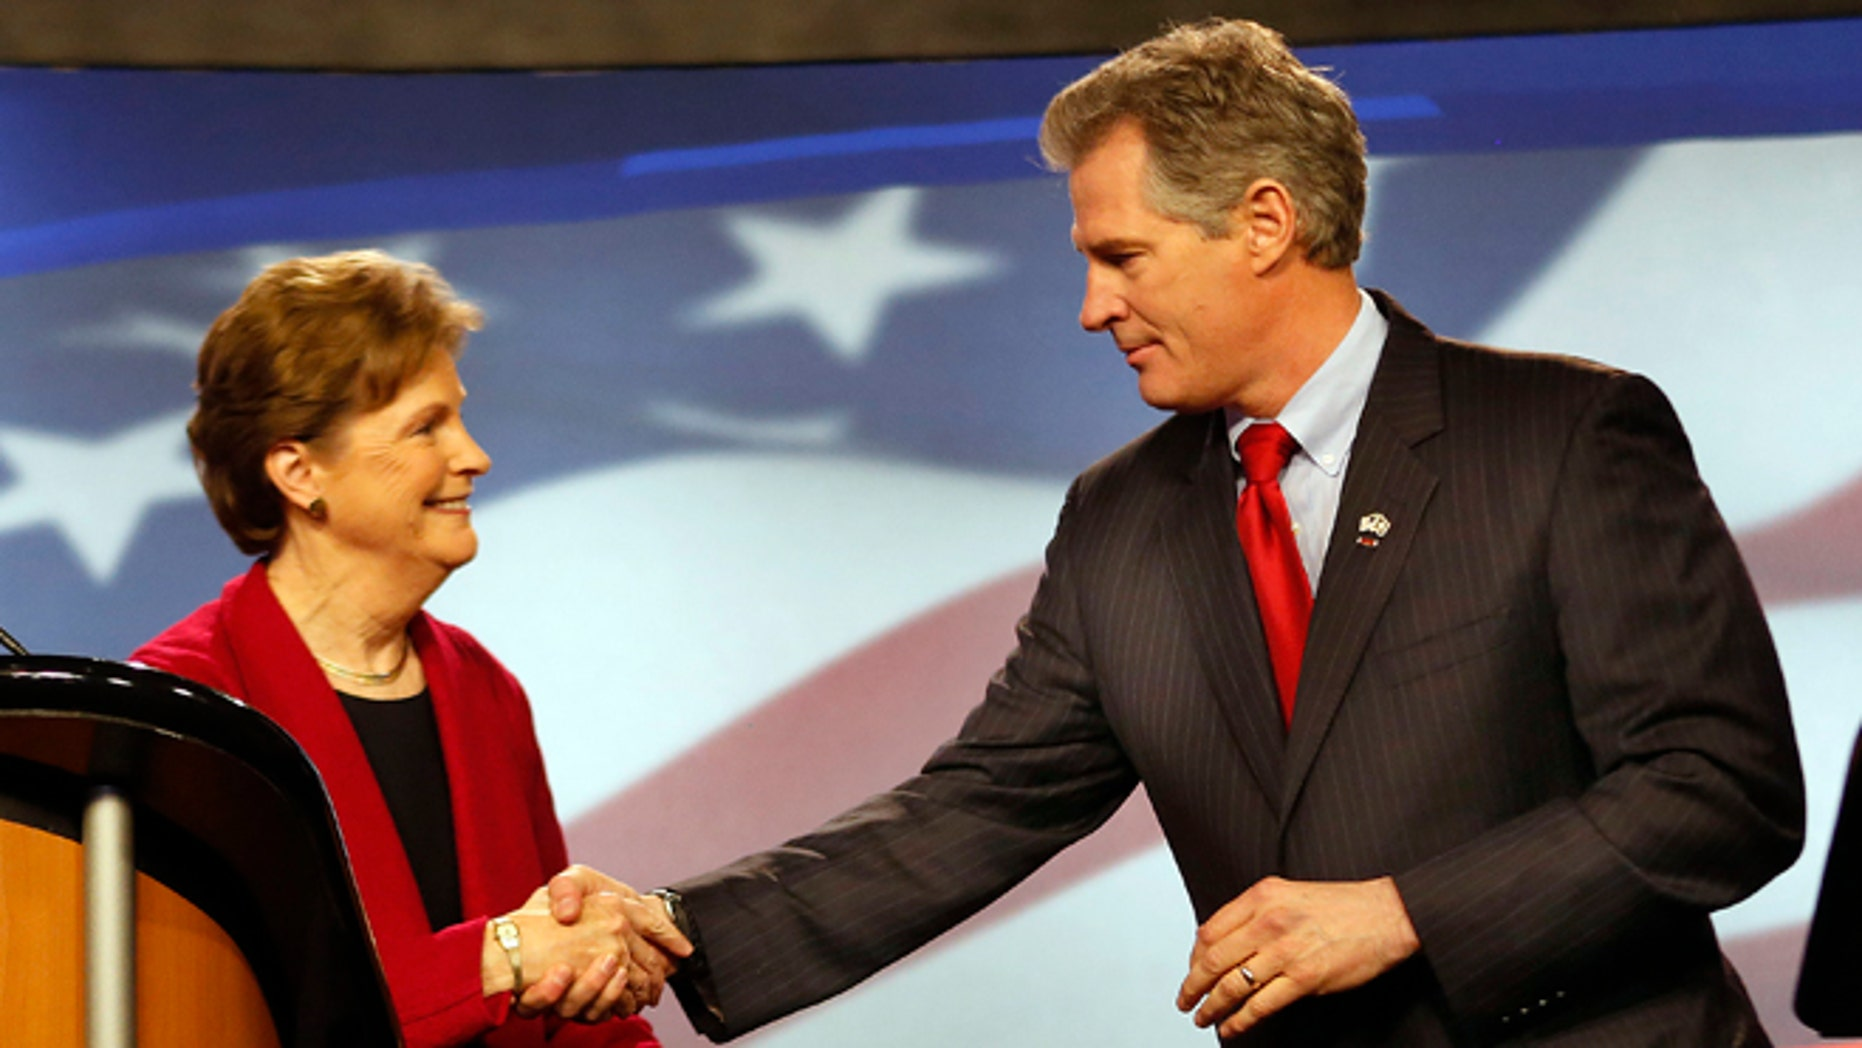 In this Thursday, Oct., 2014 photo, Democrat, U.S. Sen Jeanne Shaheen, left, shakes hands with her Republican opponent former Massachusetts U.S. Sen. Scott Brown before a live televised debate for U.S. Senate.